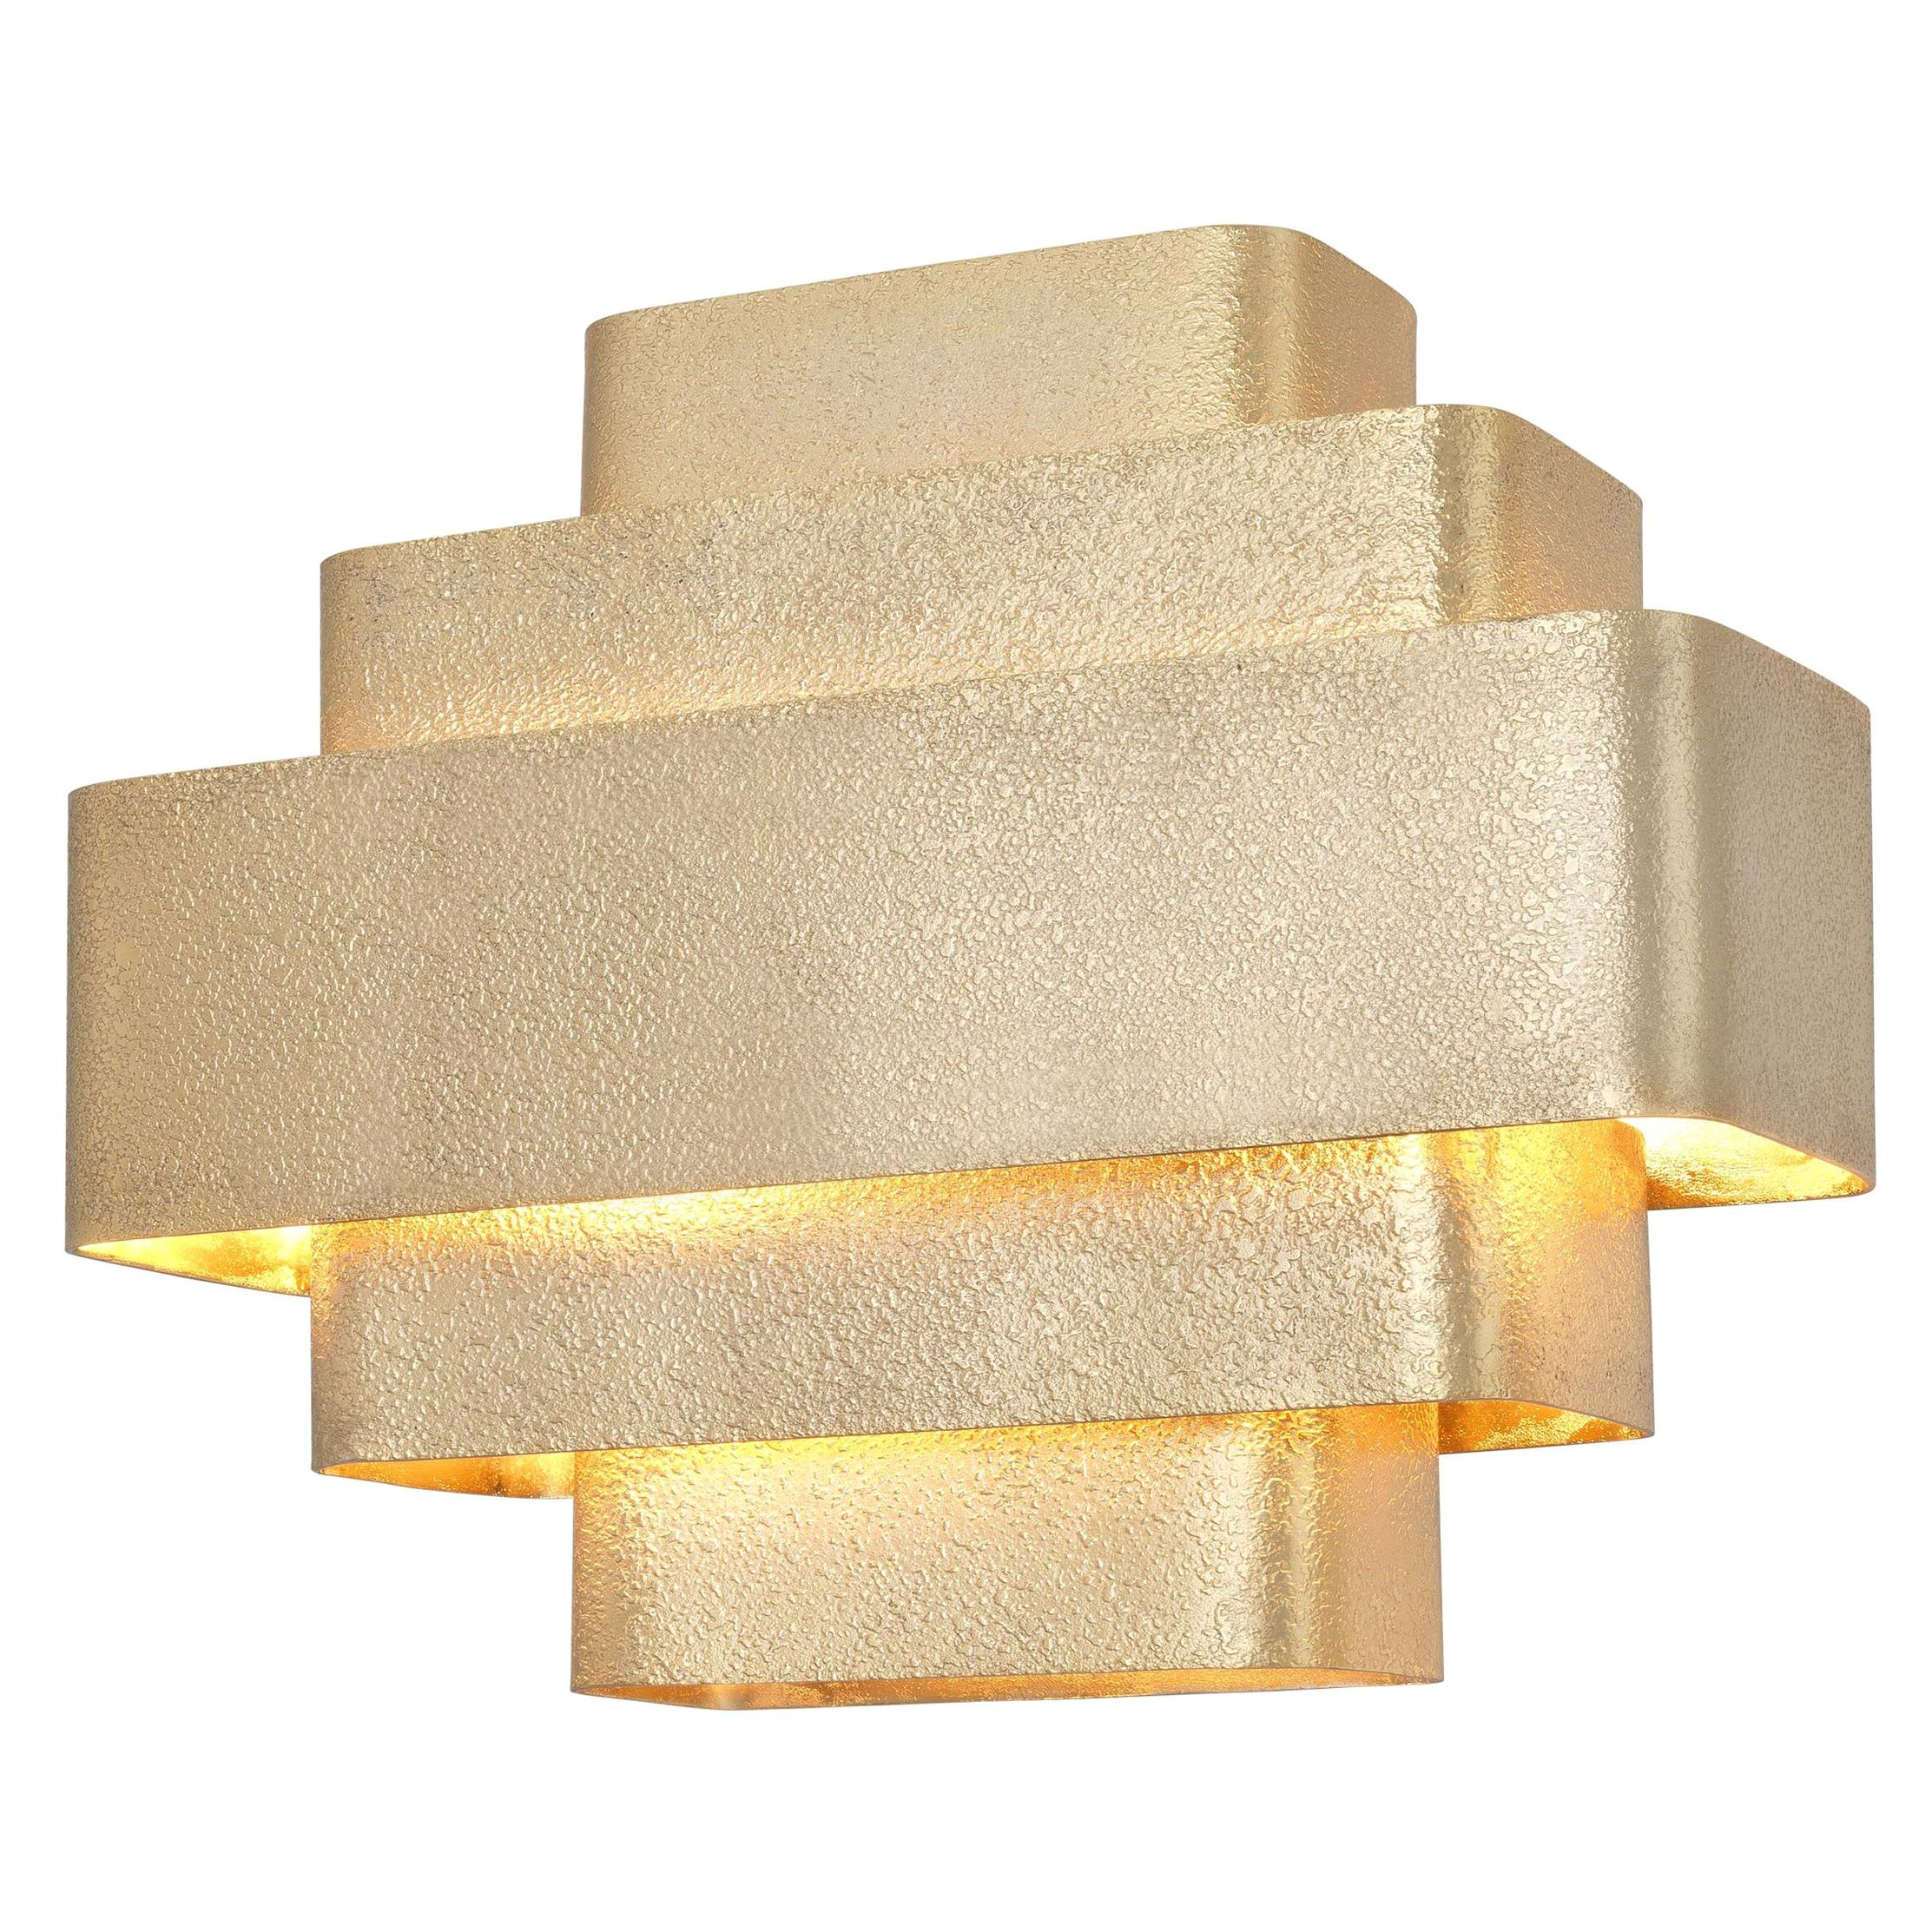 Art Deco Style and Dutch Design Textured Wall Light